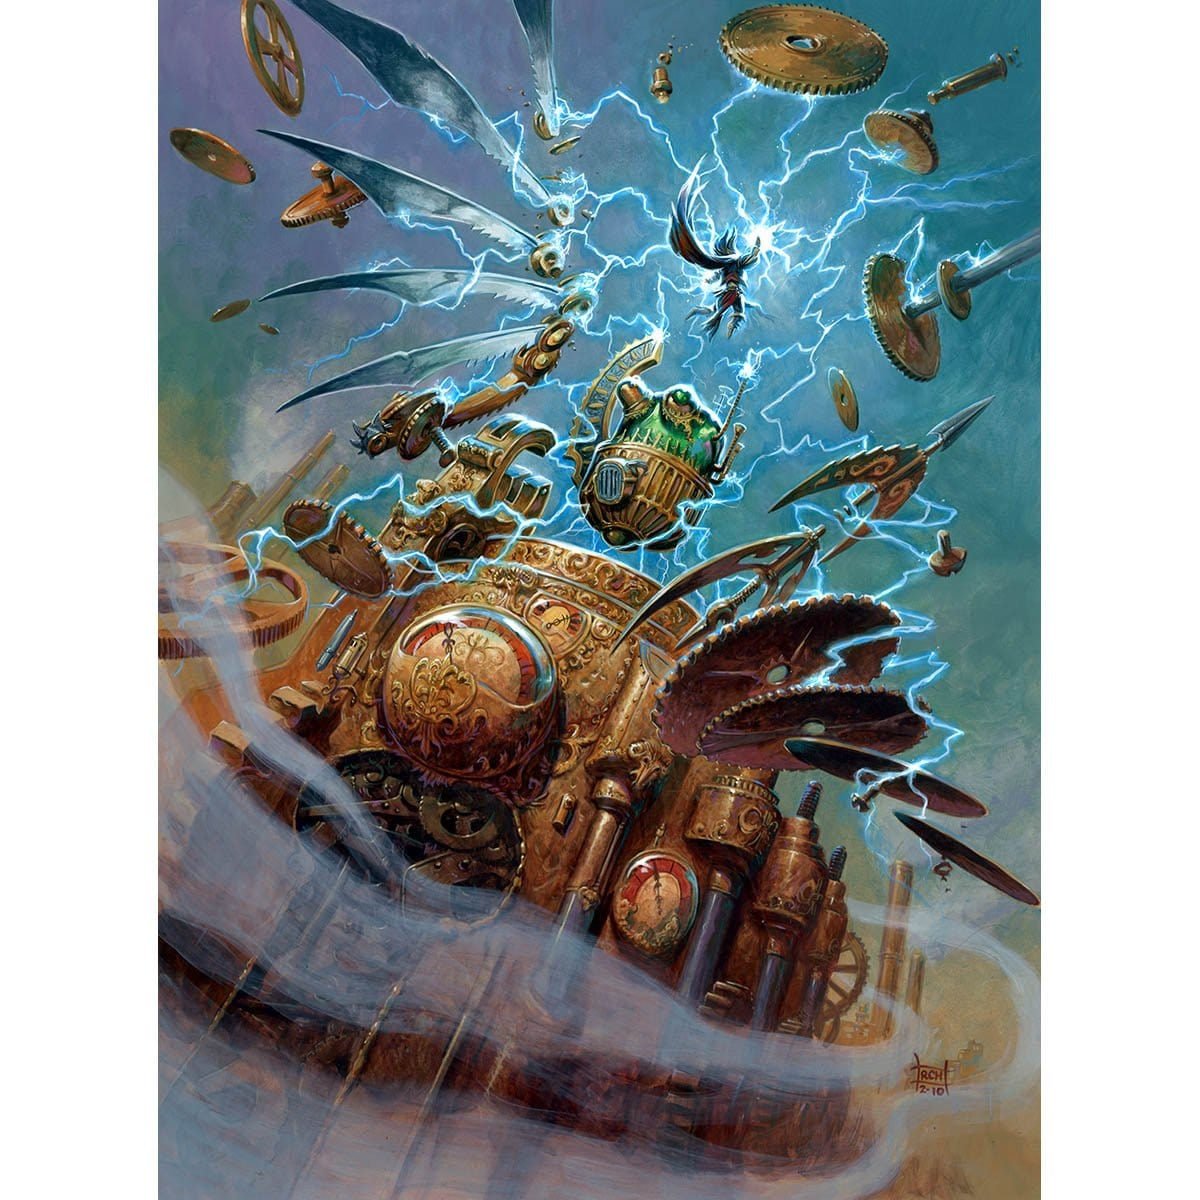 The Pieces Are Coming Together Print - Print - Original Magic Art - Accessories for Magic the Gathering and other card games